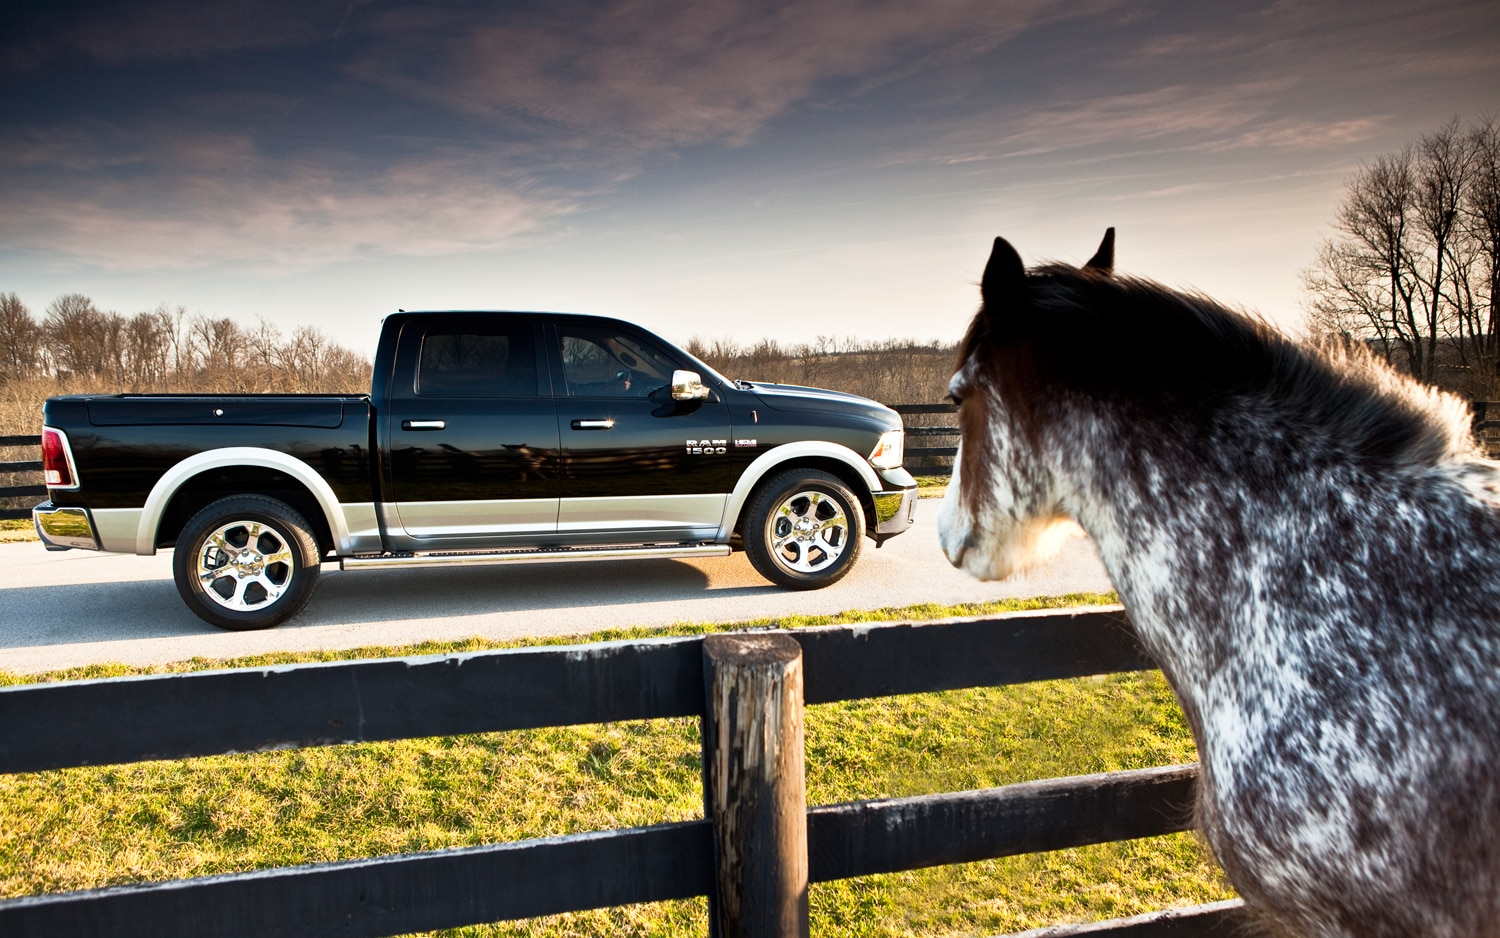 2013 Ram 1500 Side View With Horse